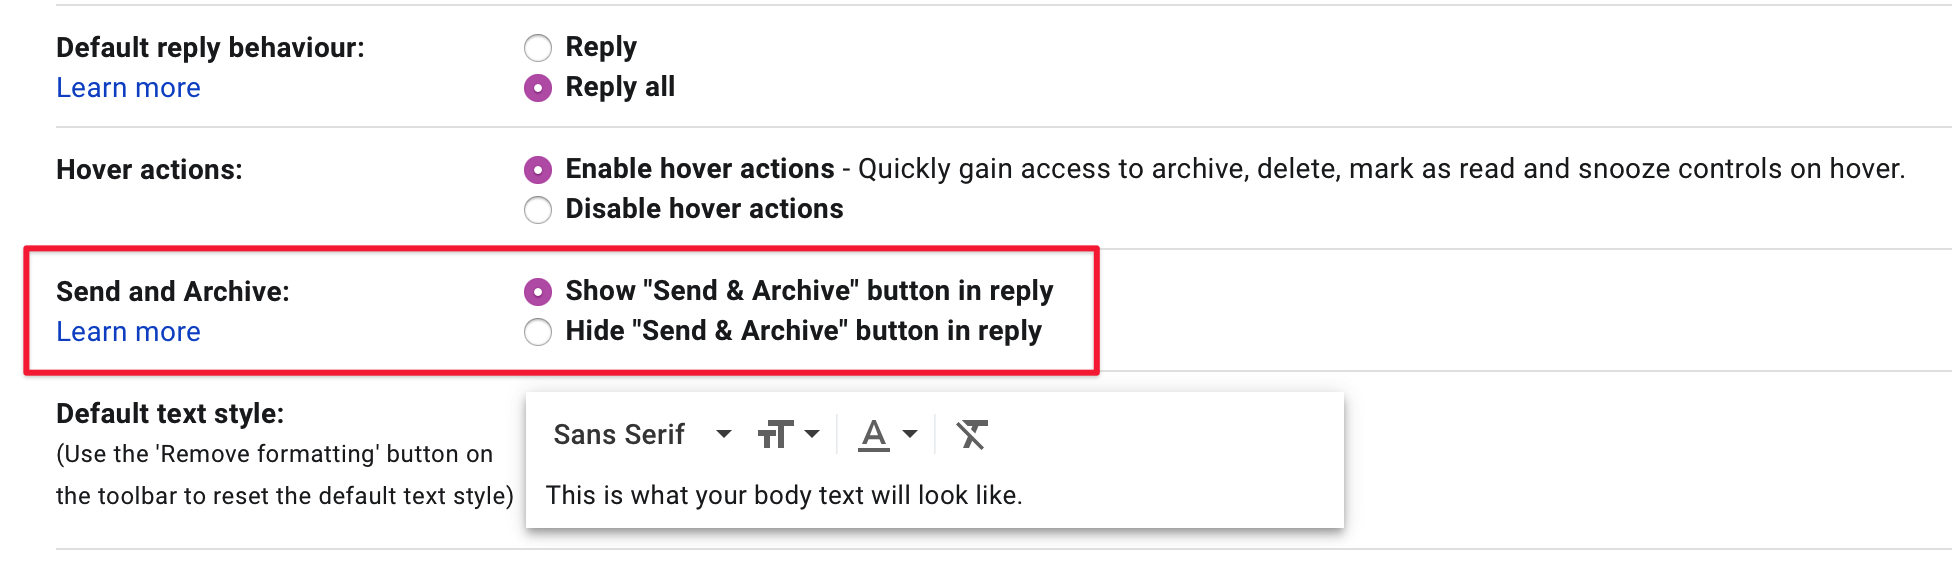 Send & archive in Gmail screenshot